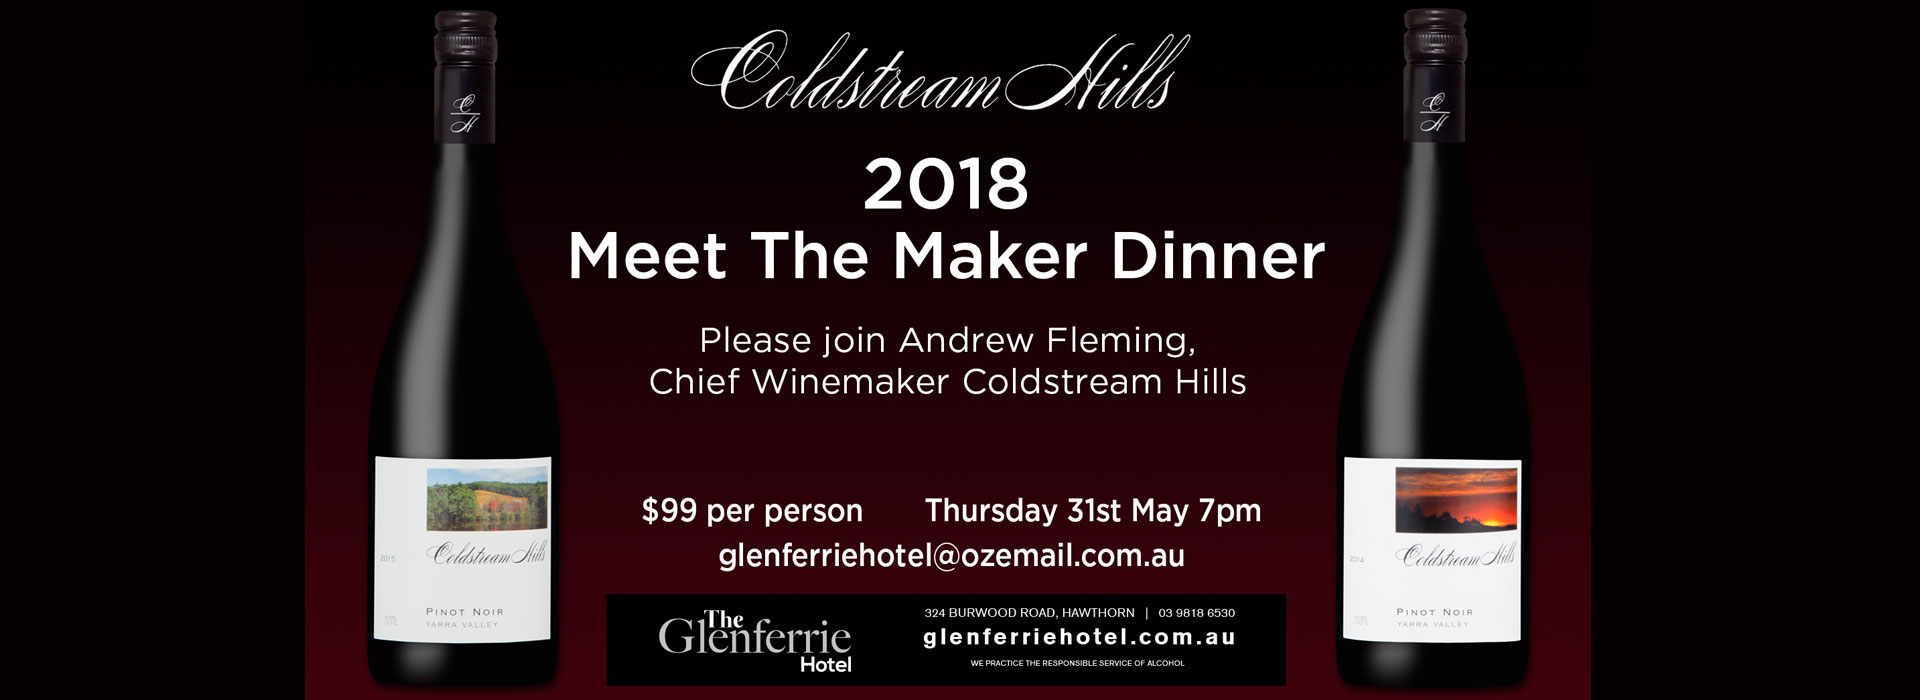 Coldstream wine tasting at The Glenferrie